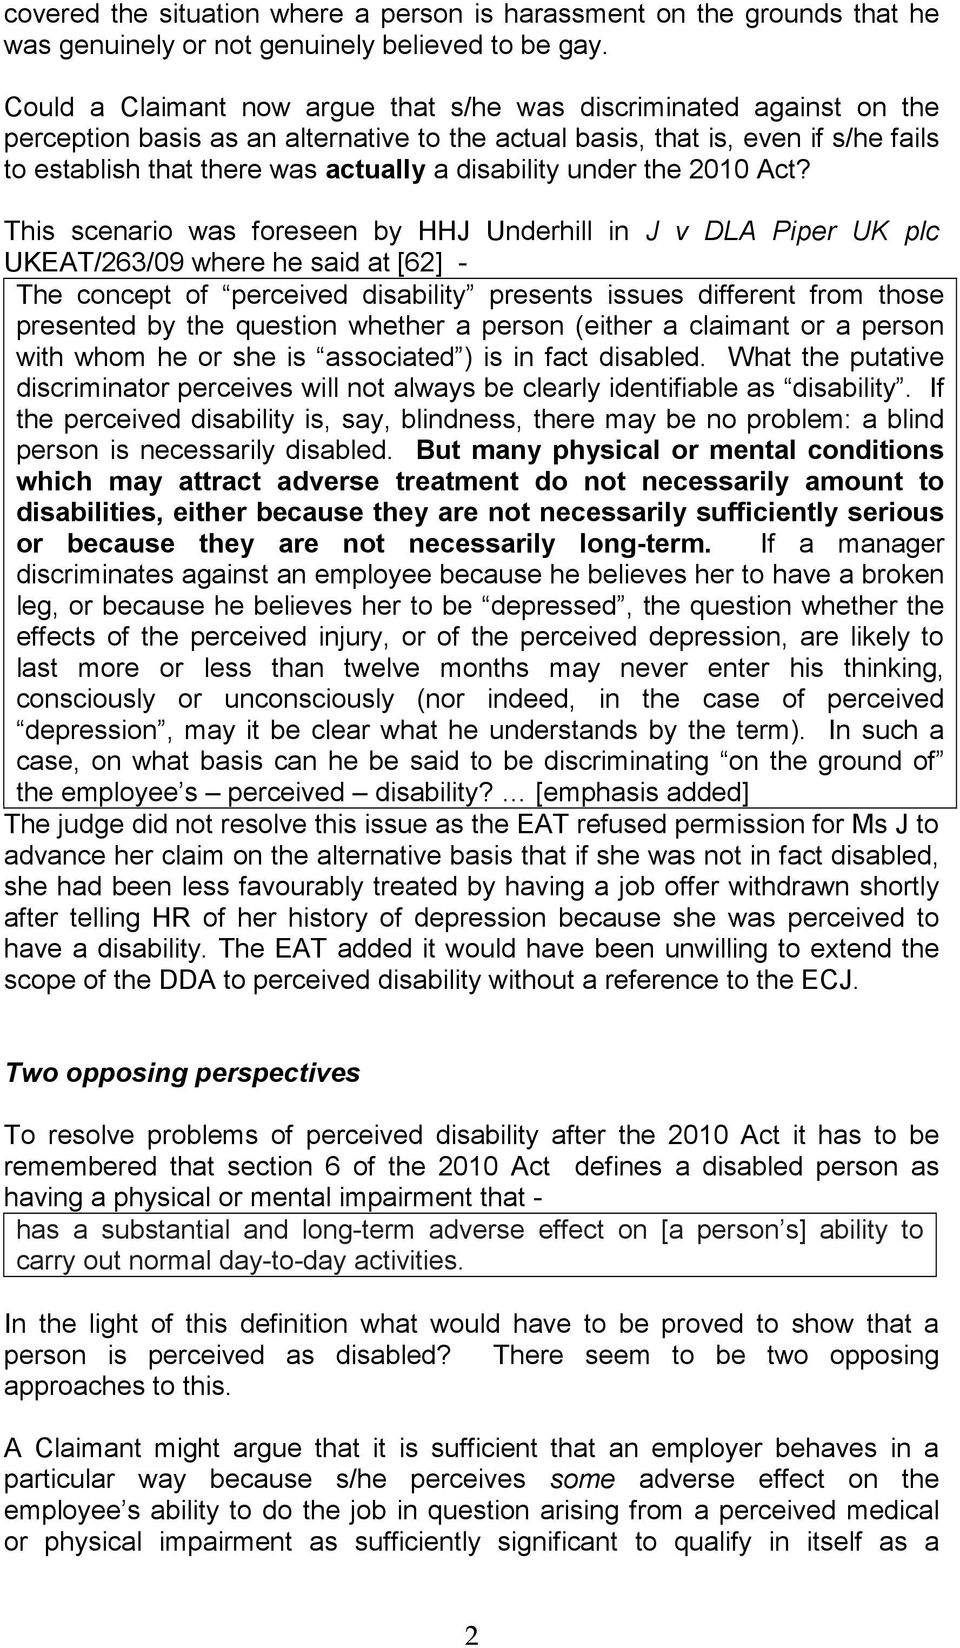 disability under the 2010 Act?